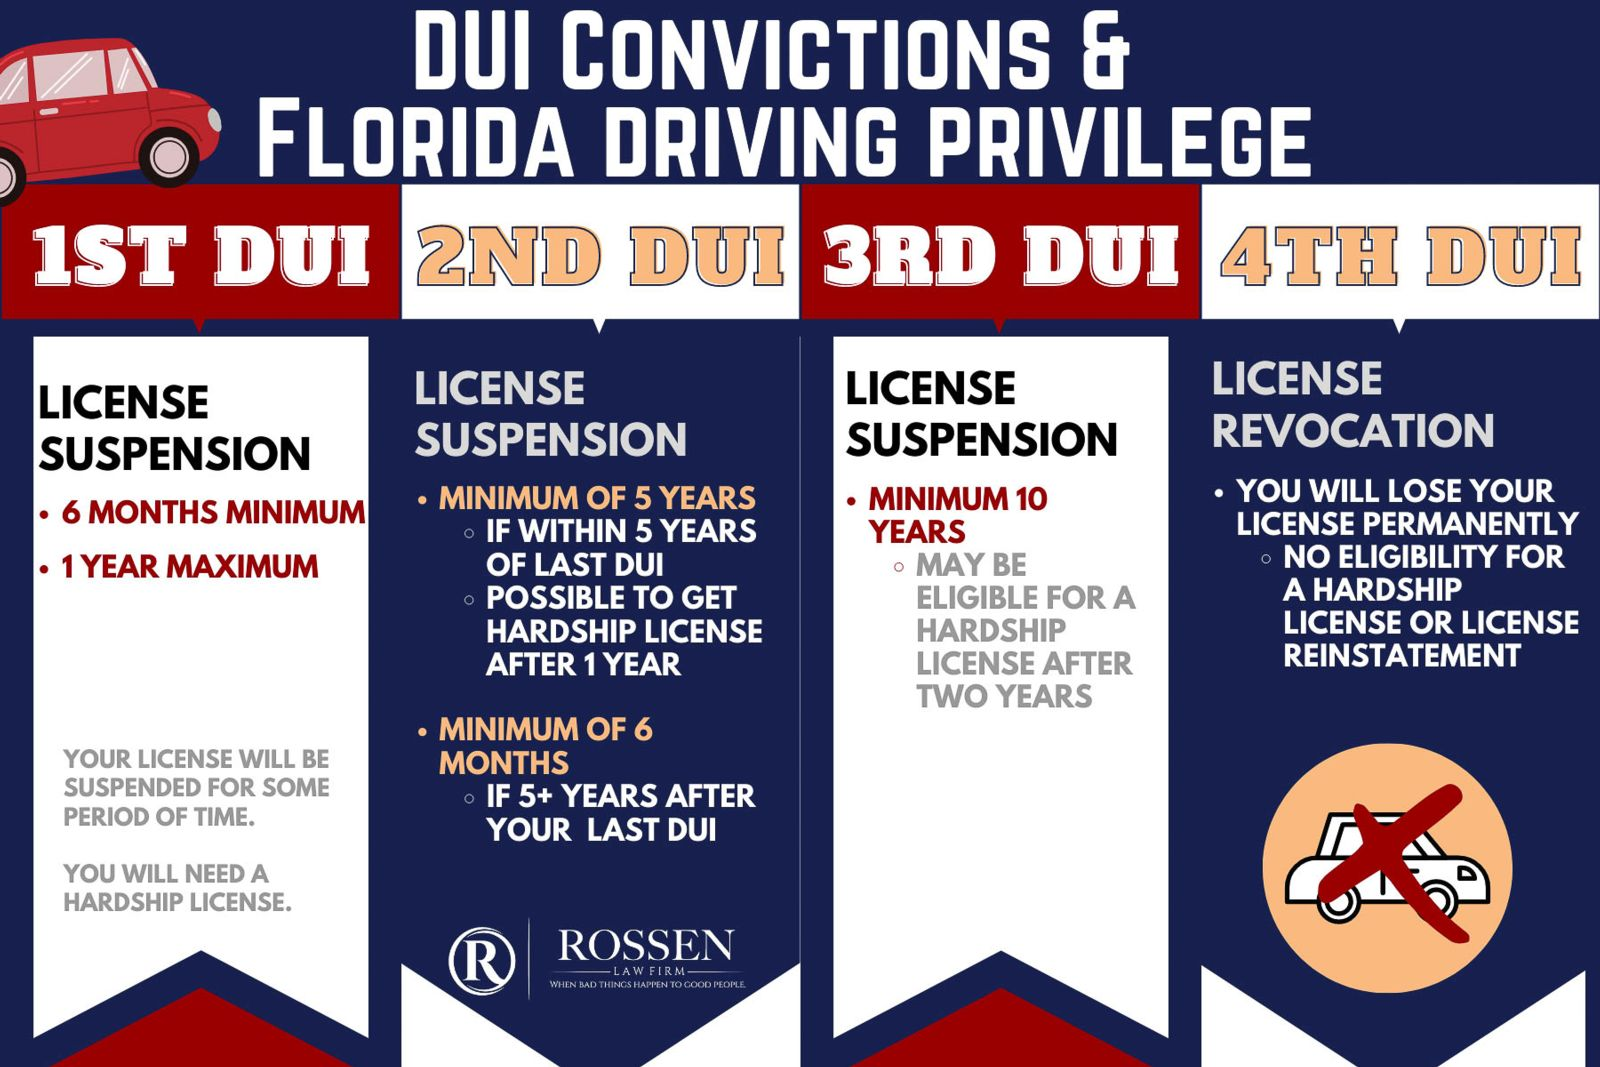 Florida DUI driving and drivers license penalties_fort lauderdale criminal defense attorney